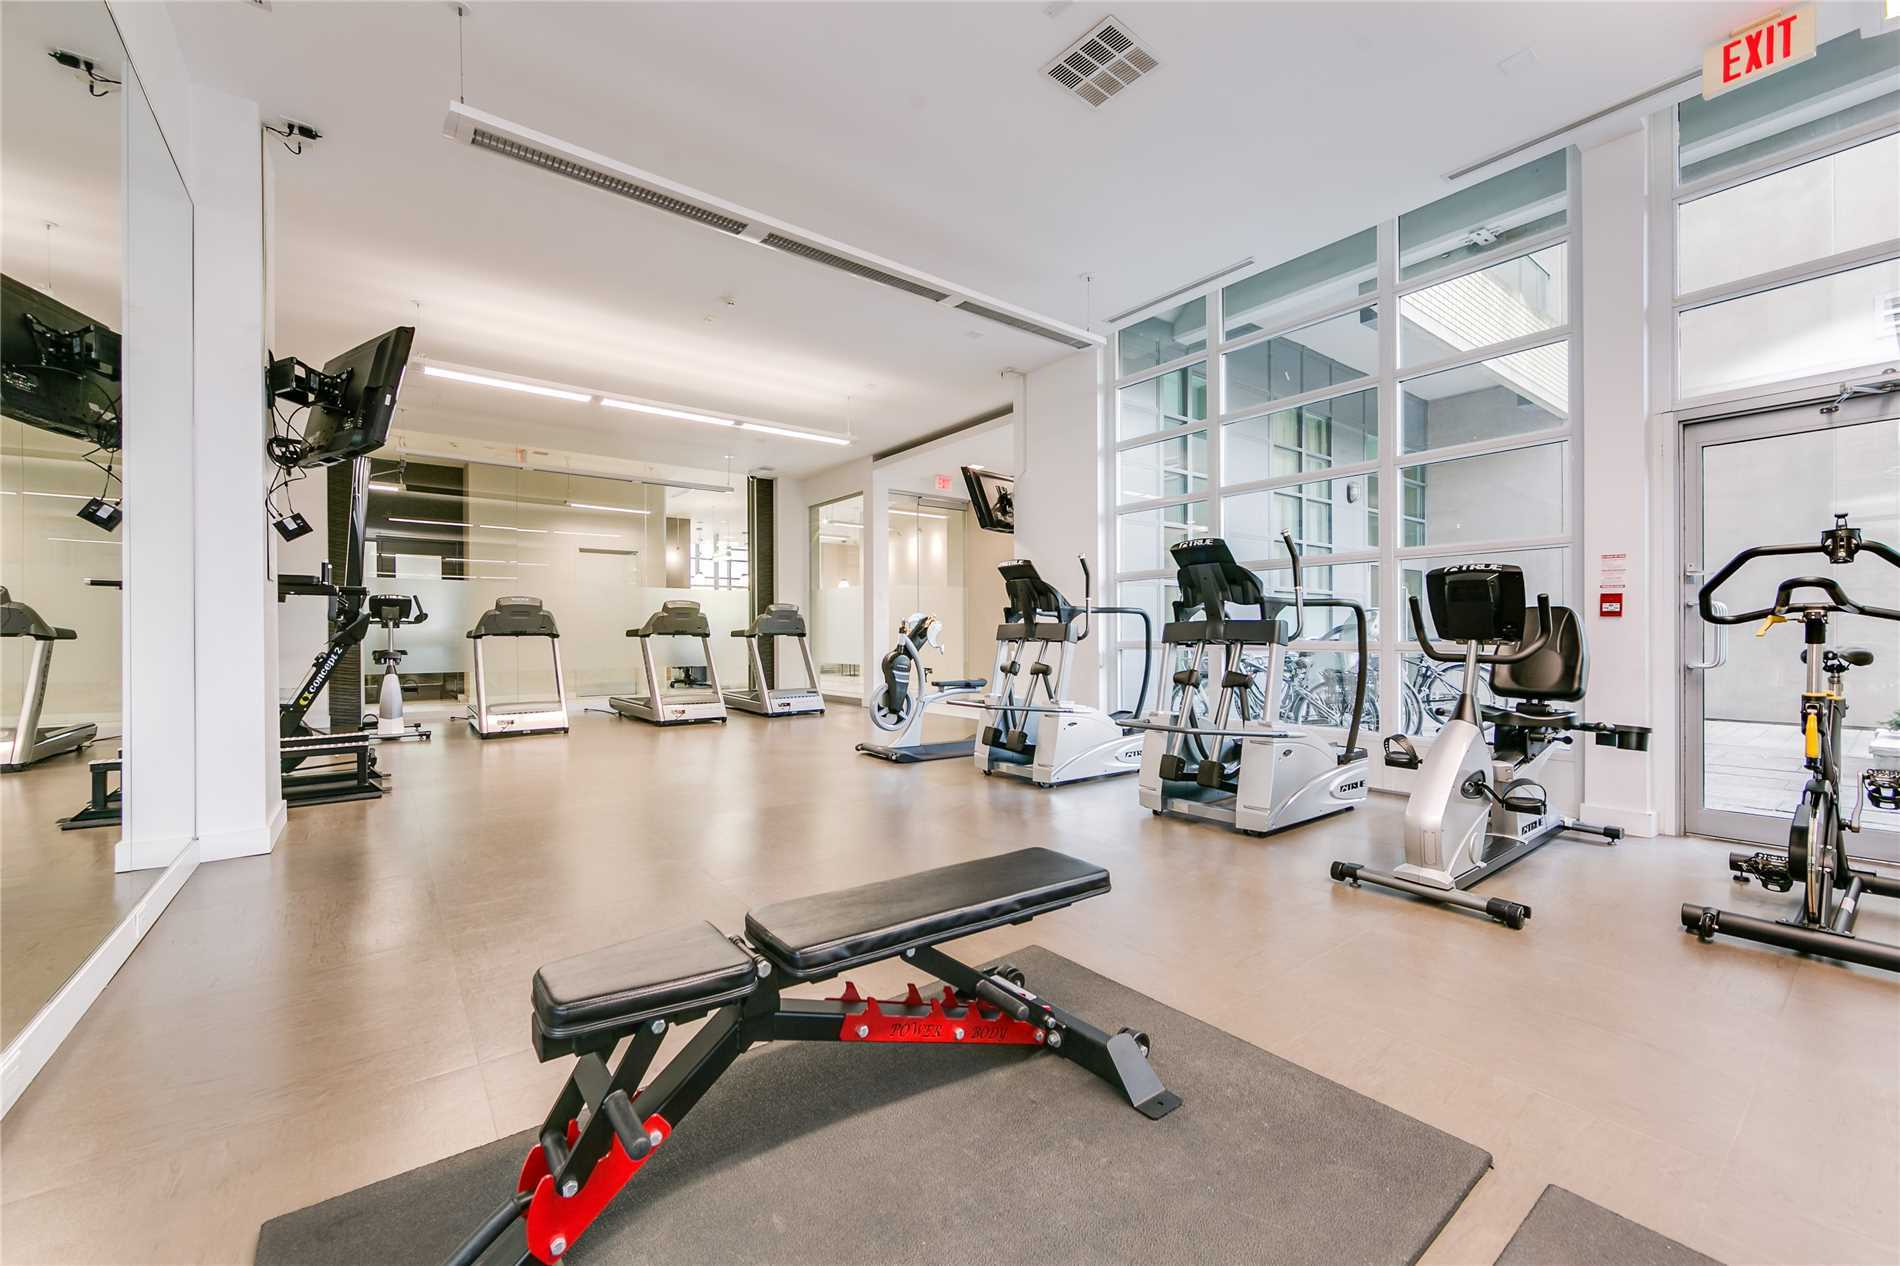 Condo with gym amenity used to increase property value.